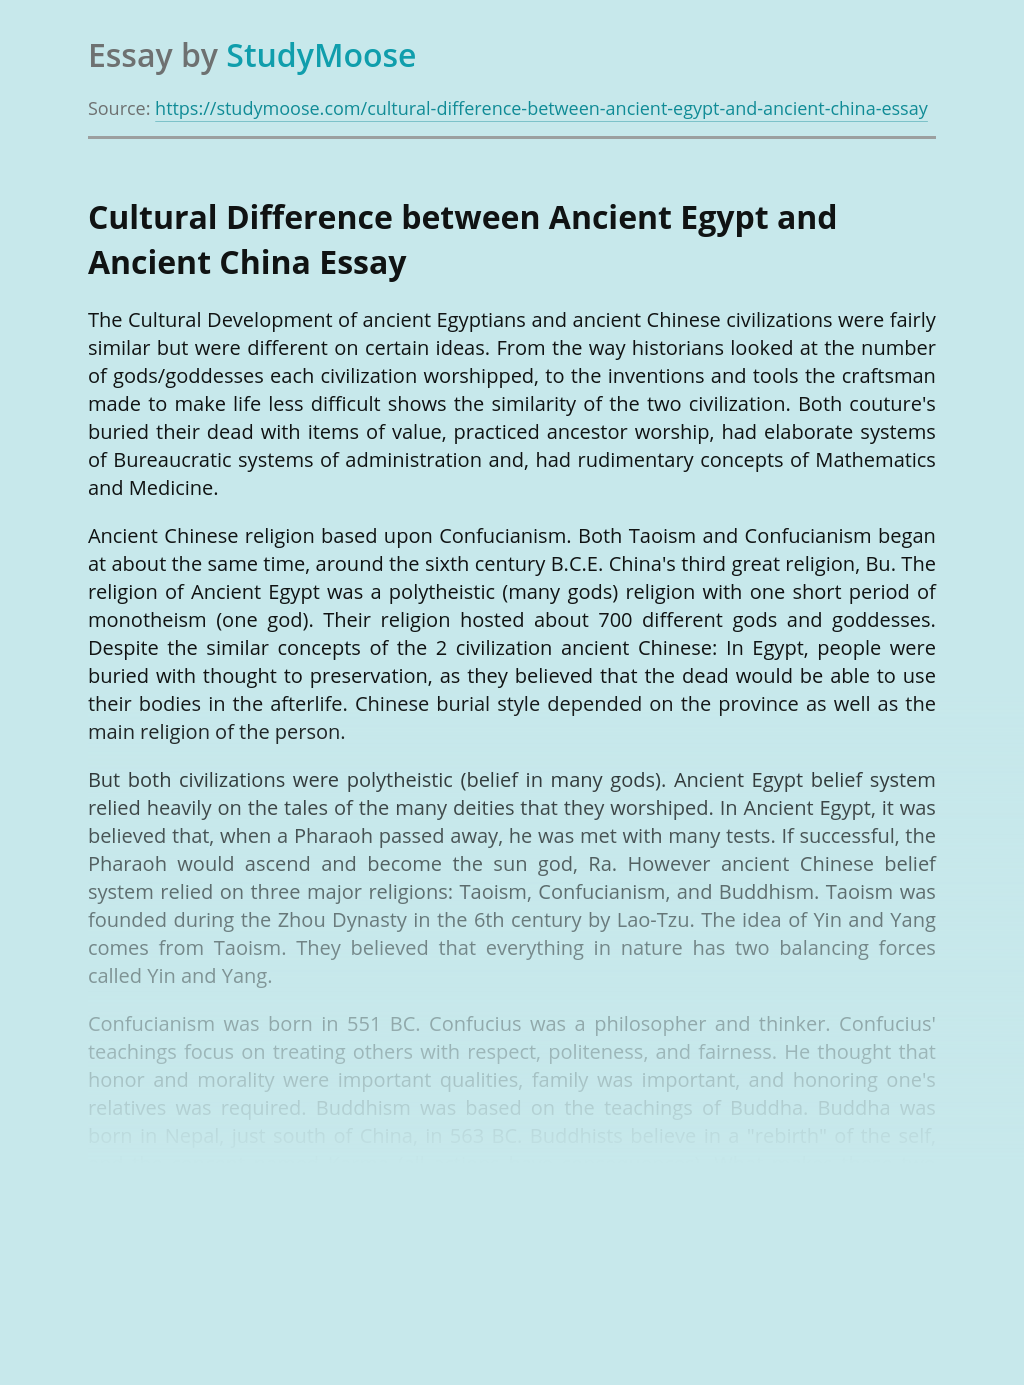 Cultural Difference between Ancient Egypt and Ancient China